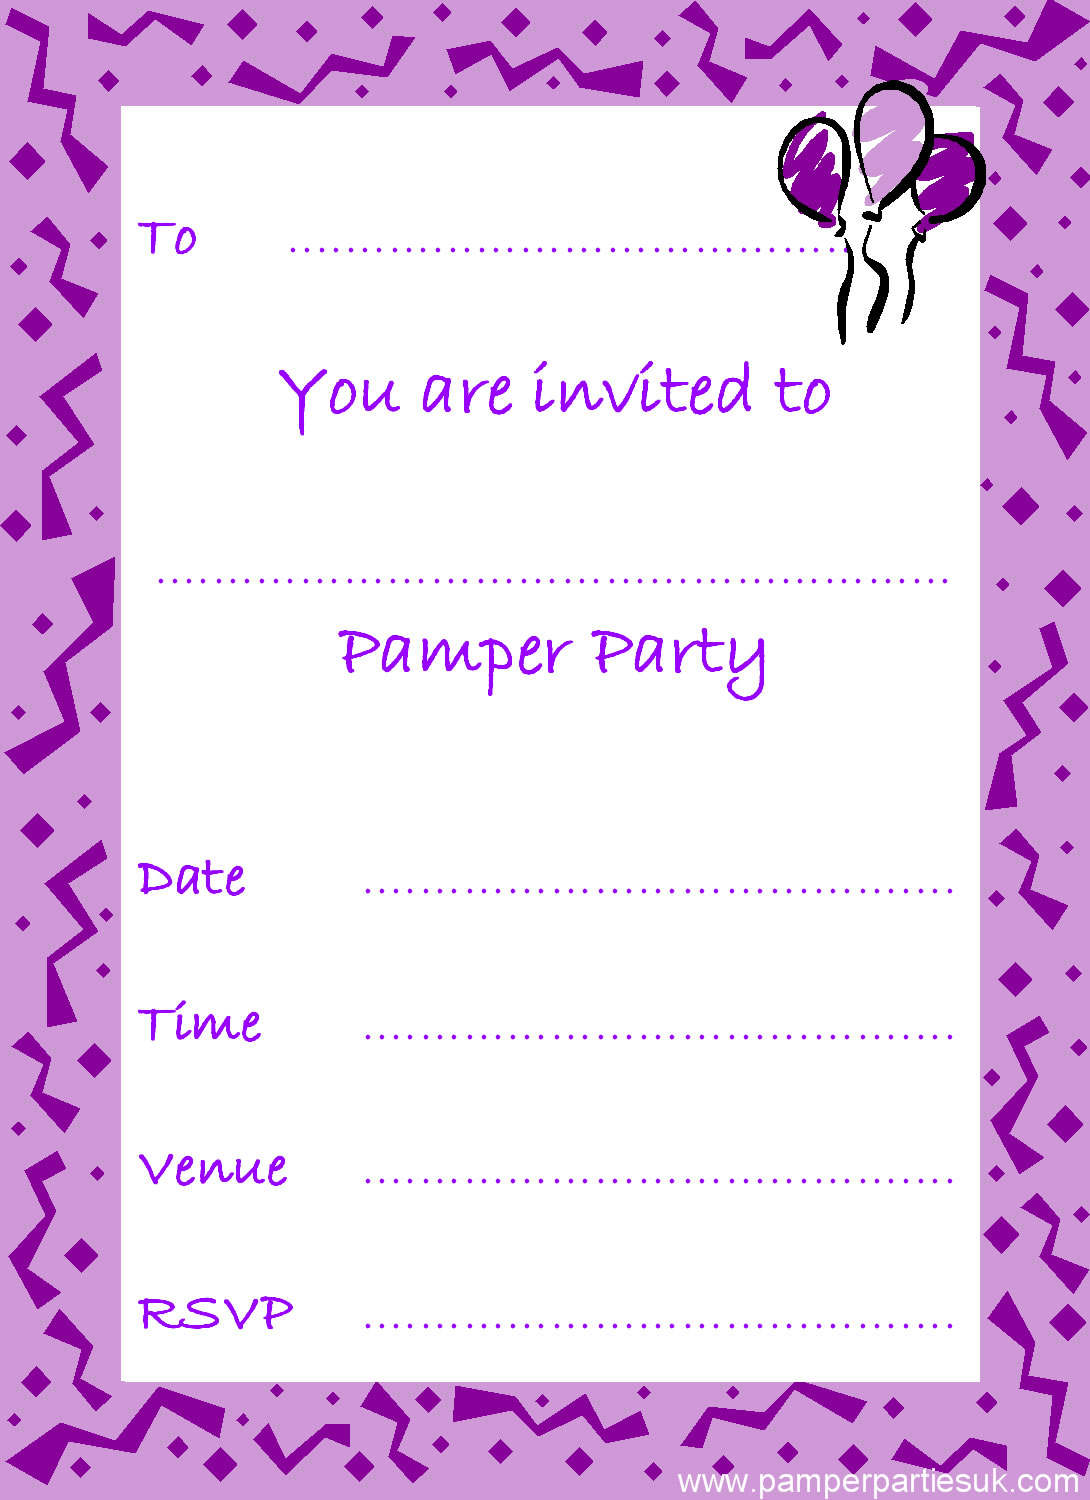 star wars birthday party invitations template cool lego star wars excellent invitations page of mickey mouse invitations templates star wars birthday party invitations template